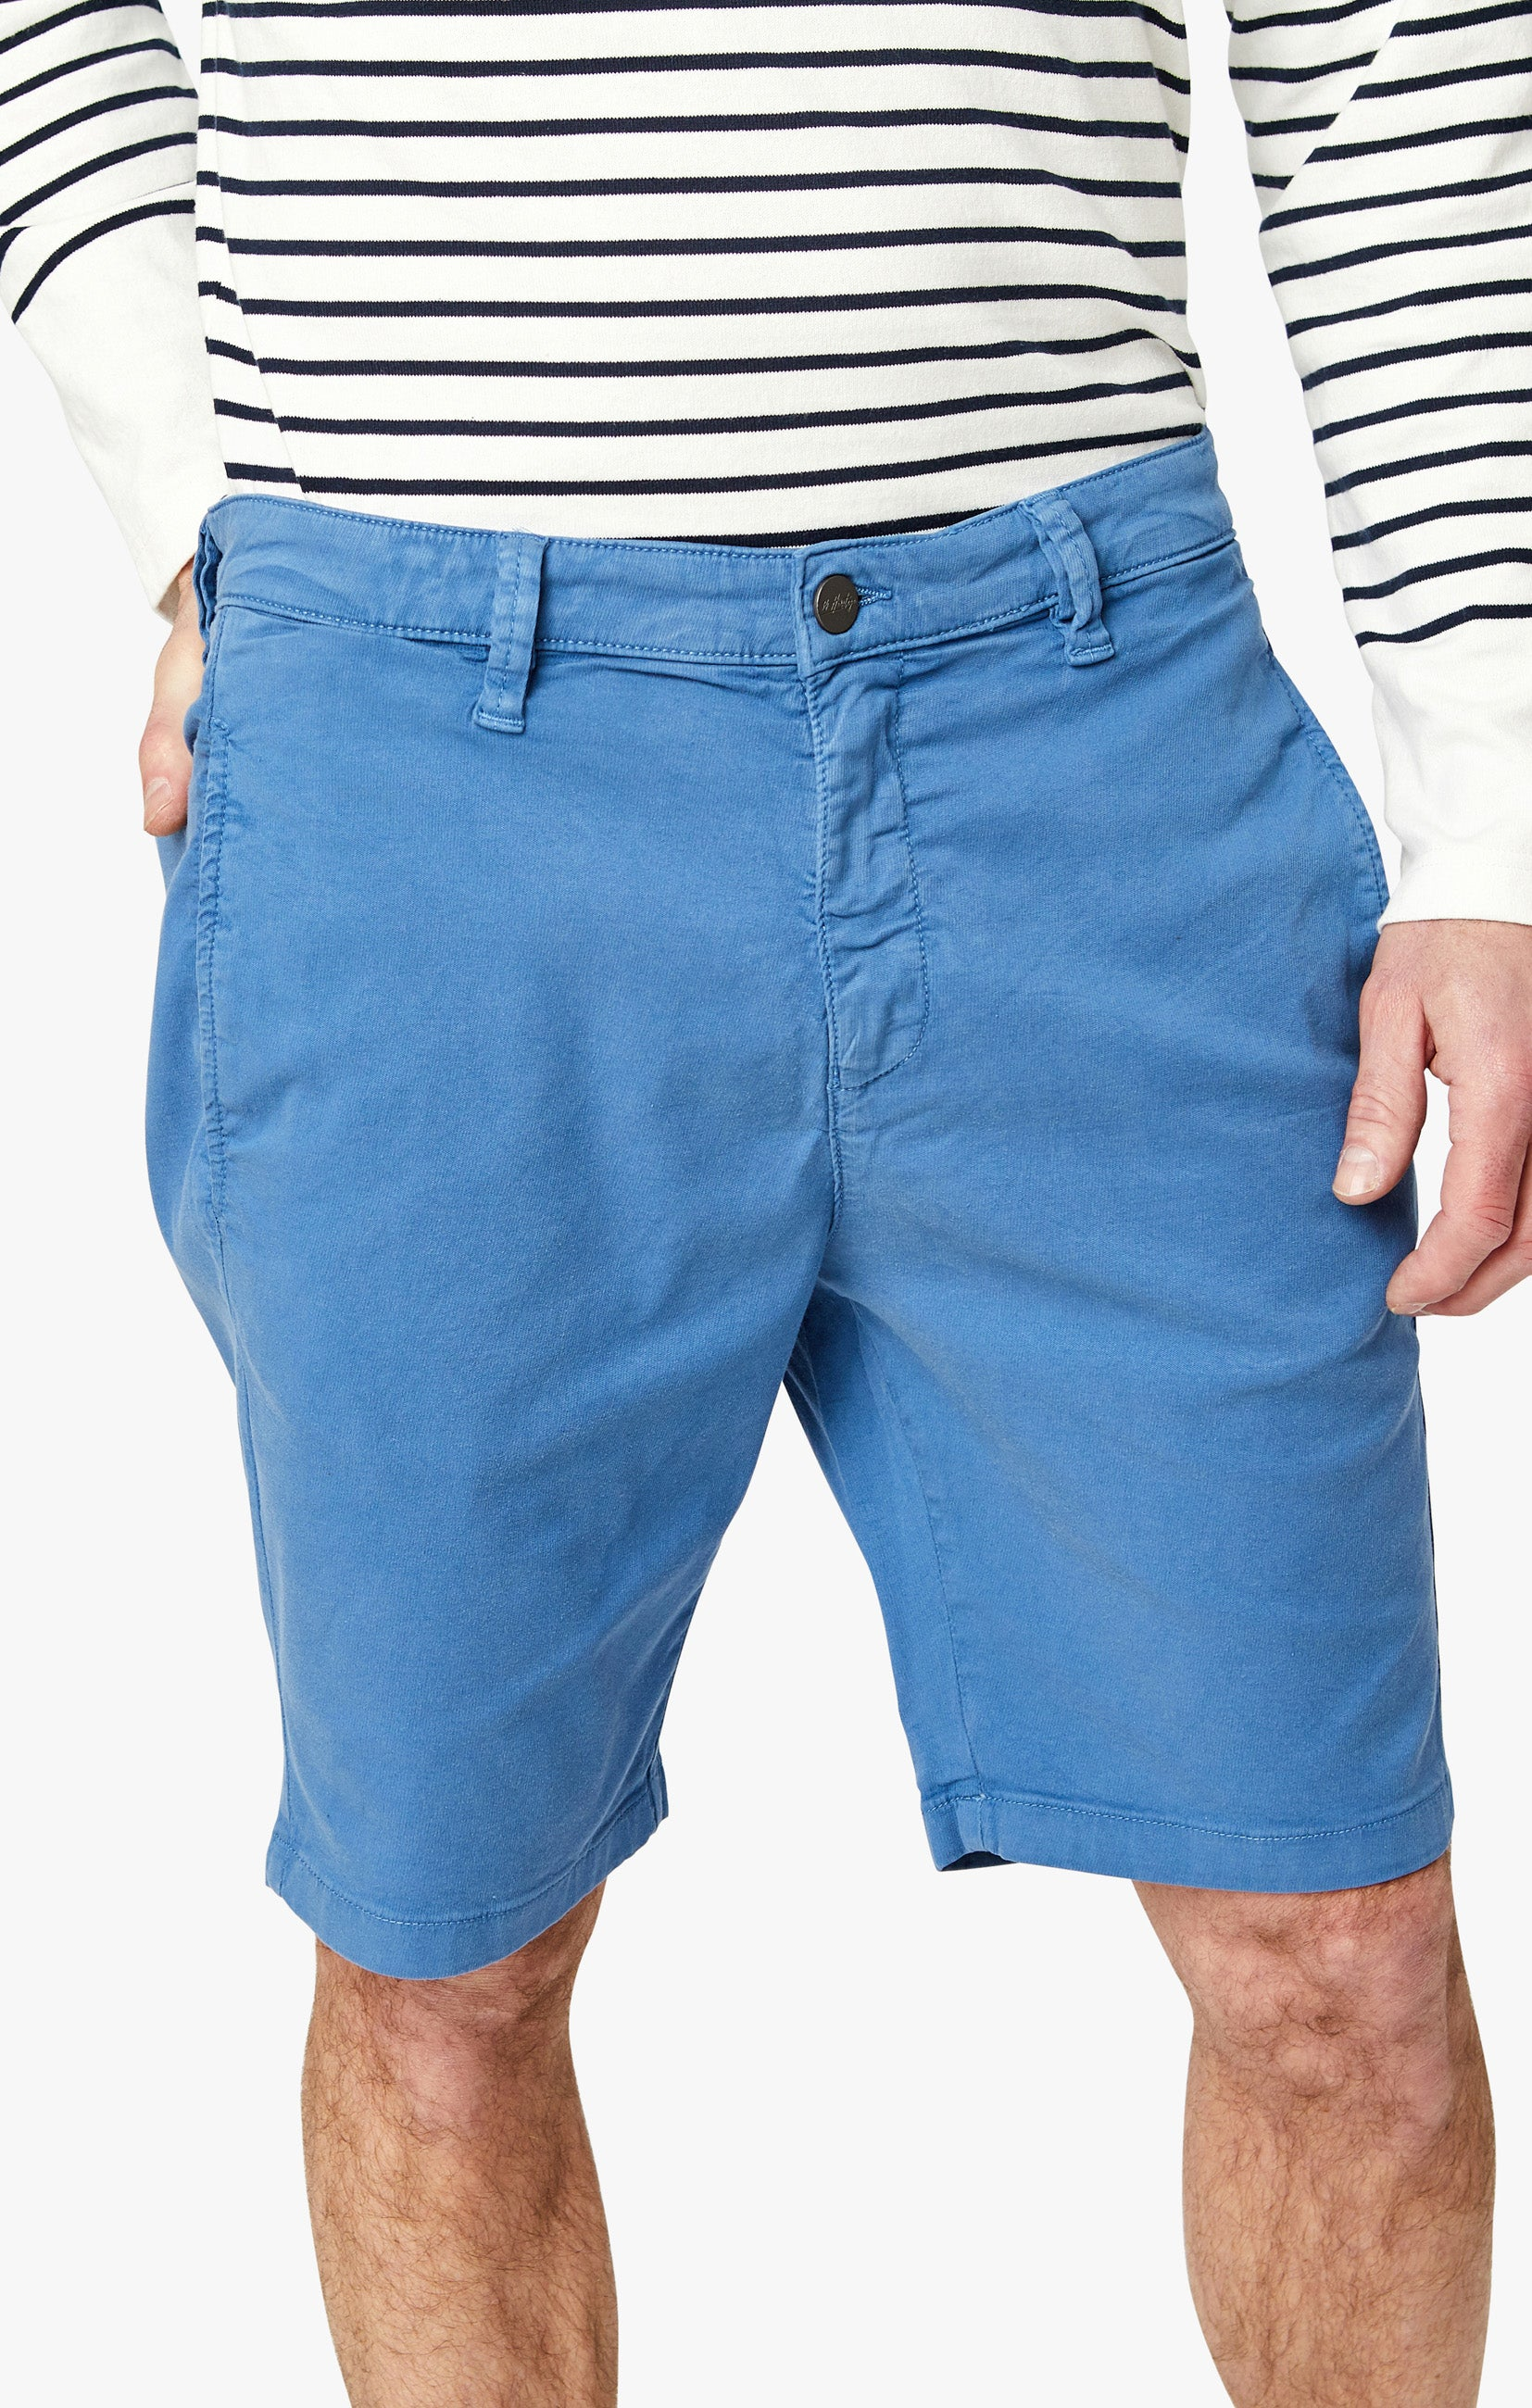 Nevada Shorts In Royal Soft Touch Image 8